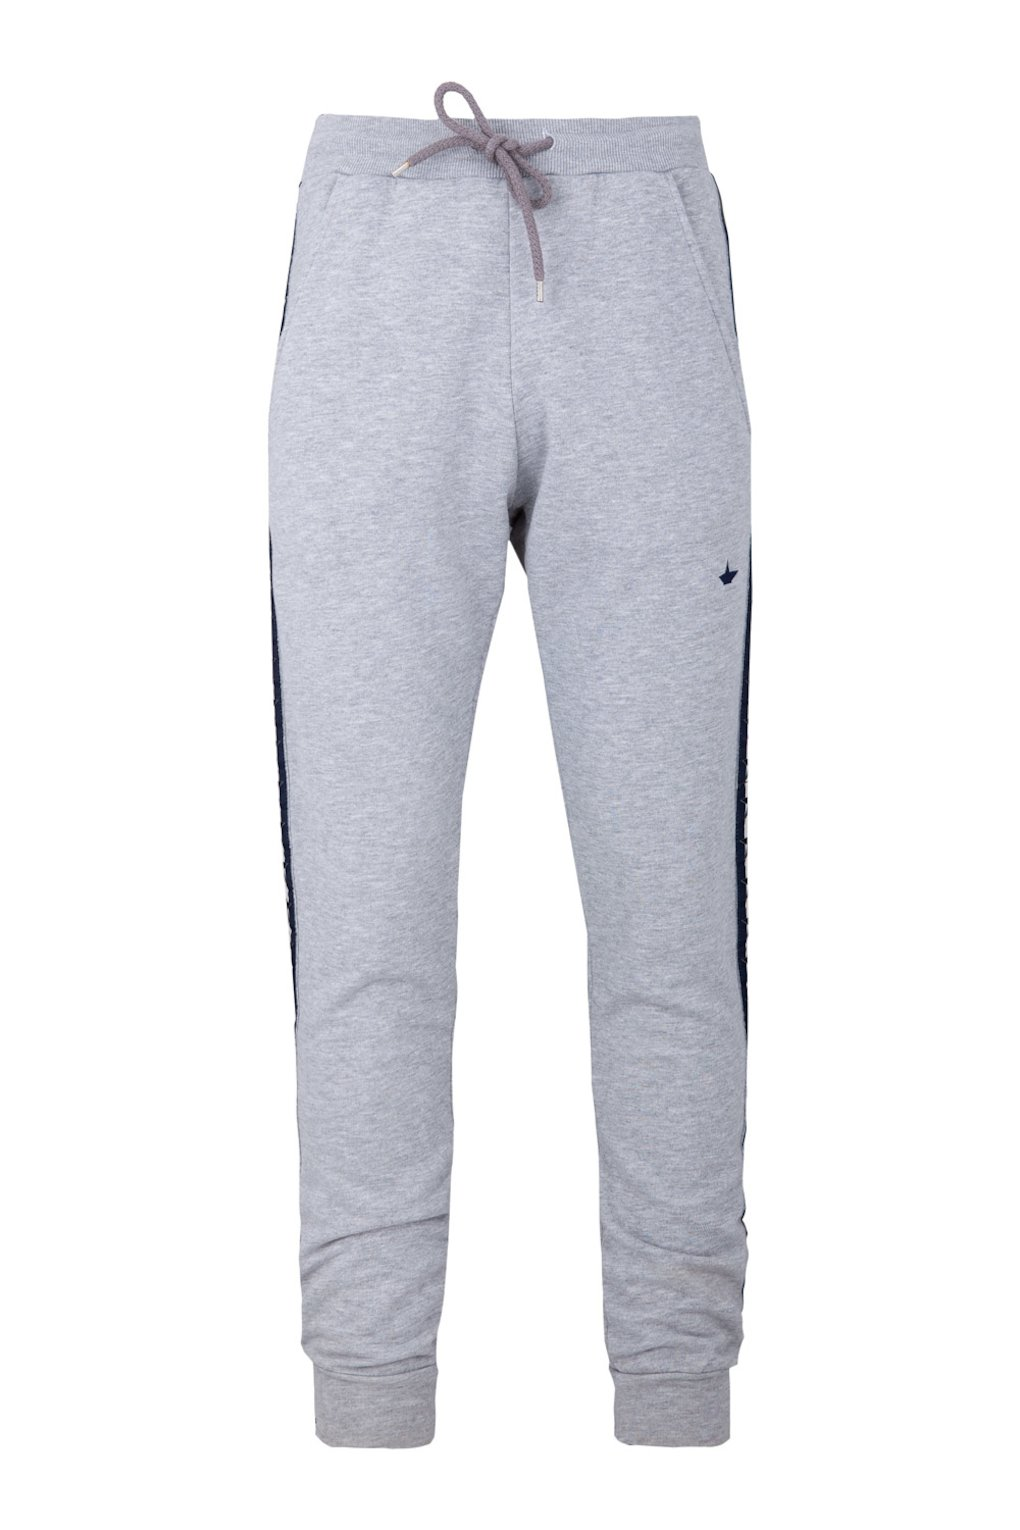 Man's fleece trousers